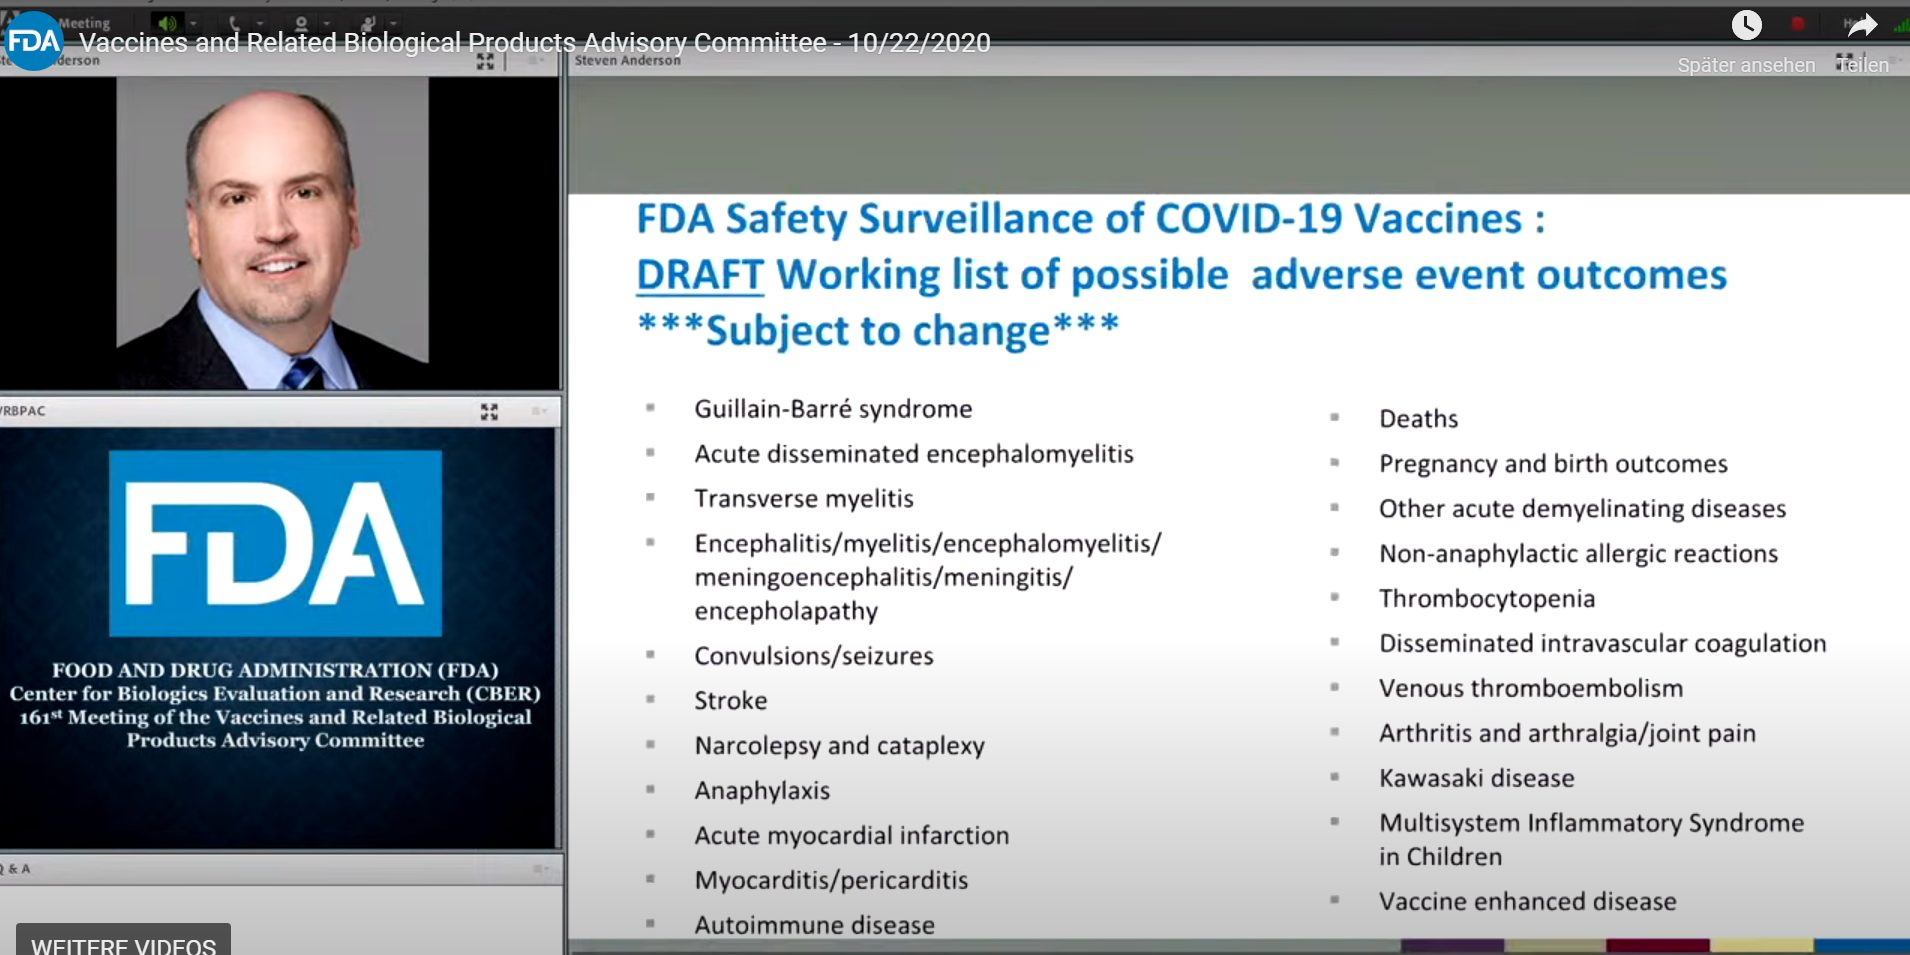 FDA Safety Surveillance of COVID-19 Vaccines: DRAFT Working list of possible adverse event outcomes